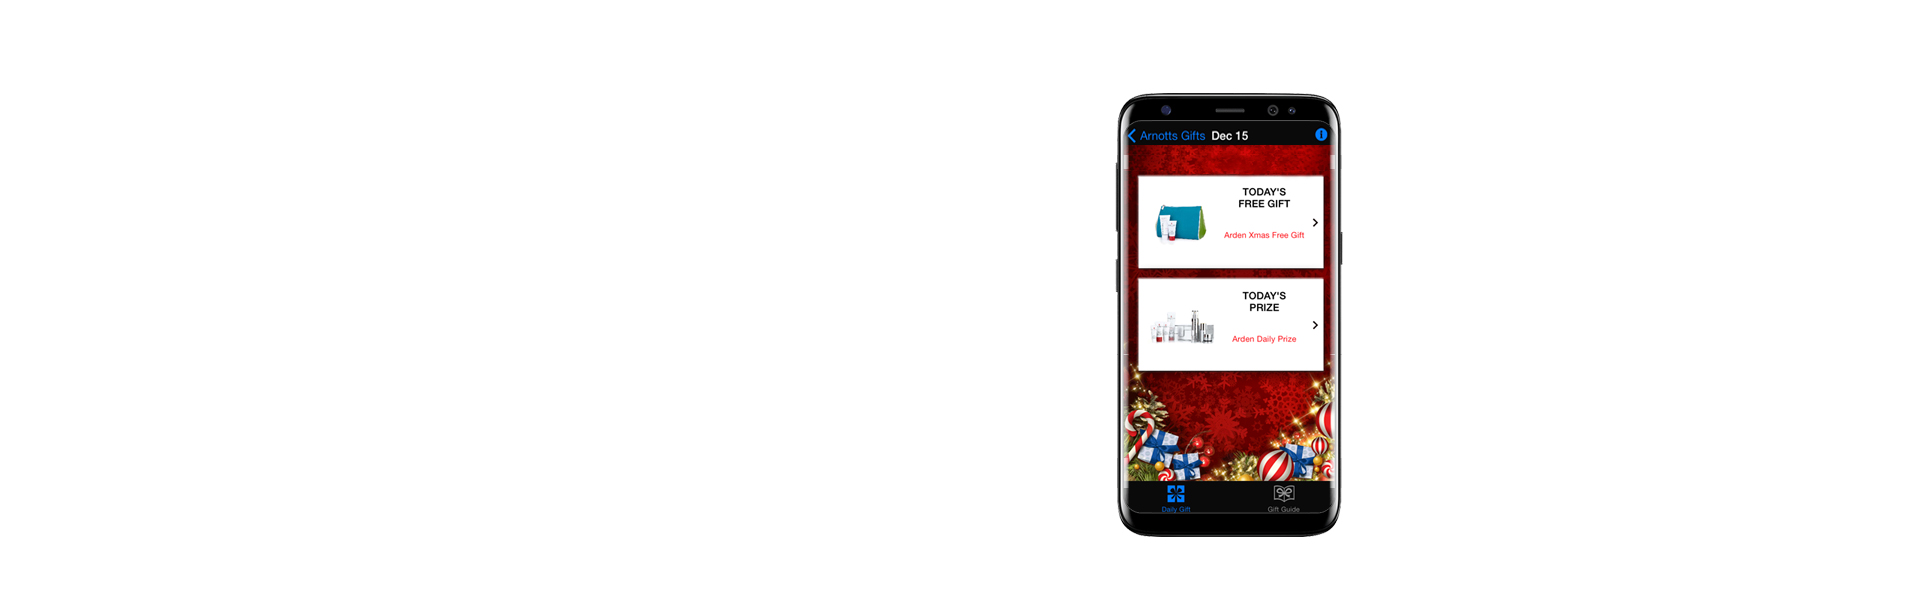 Christmas Gifts App for Arnotts — Puca